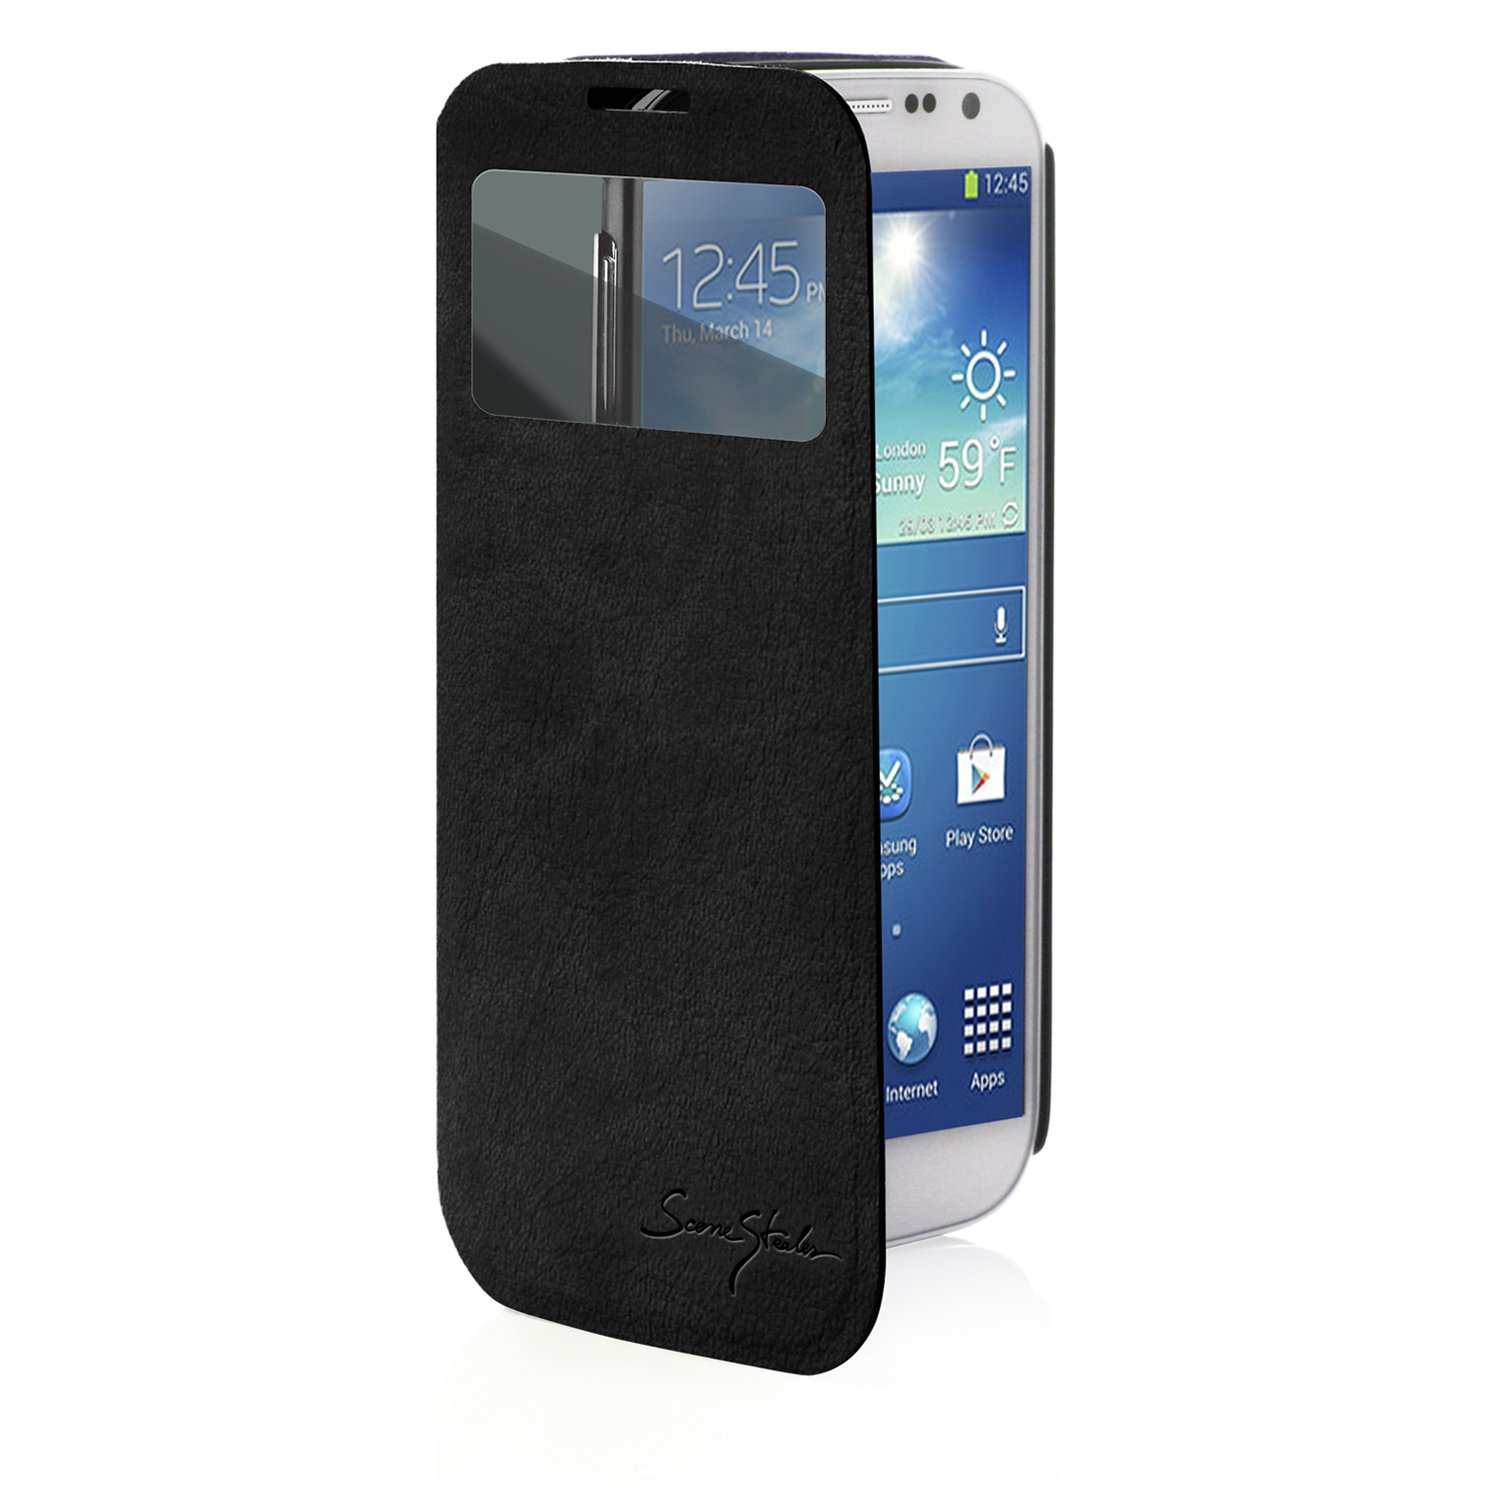 Black Tridea Samsung Galaxy S4 Iv S I9500 100 New All Italian Standing View Cover Folio Premium Case For Cell Phones